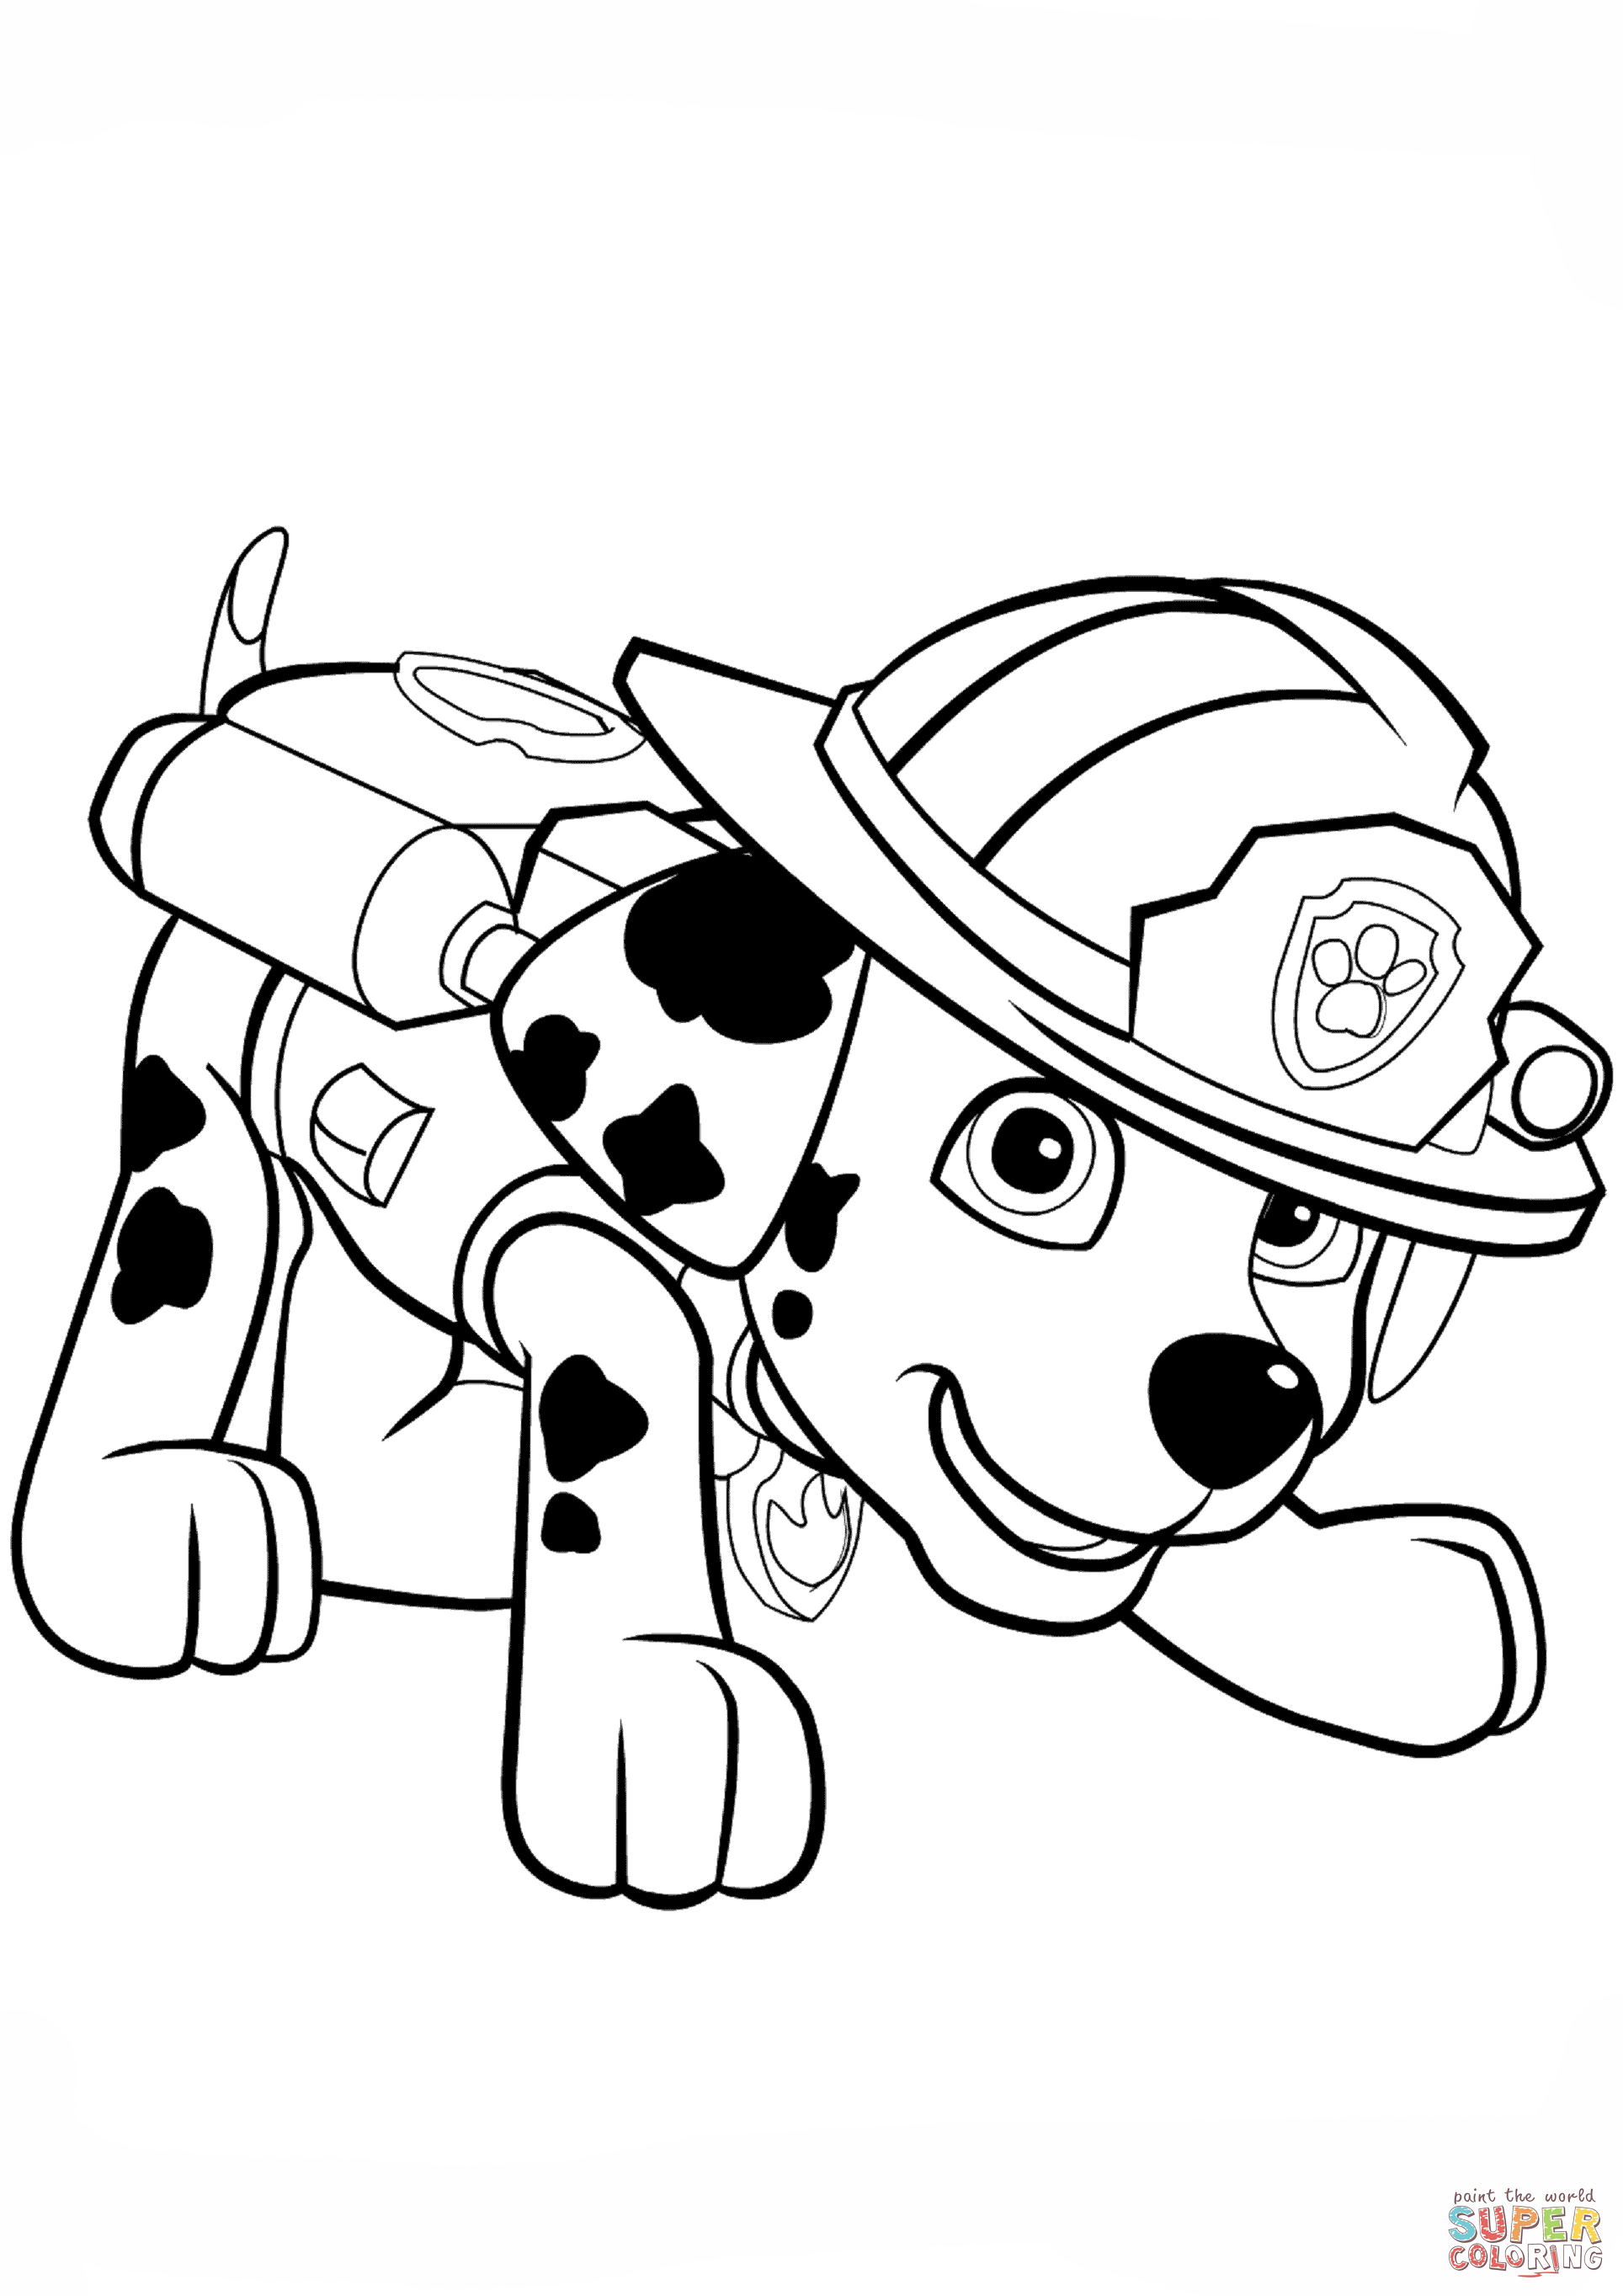 Coloring Pages Paw Patrol : Marshall paw patrol coloring pages printable print